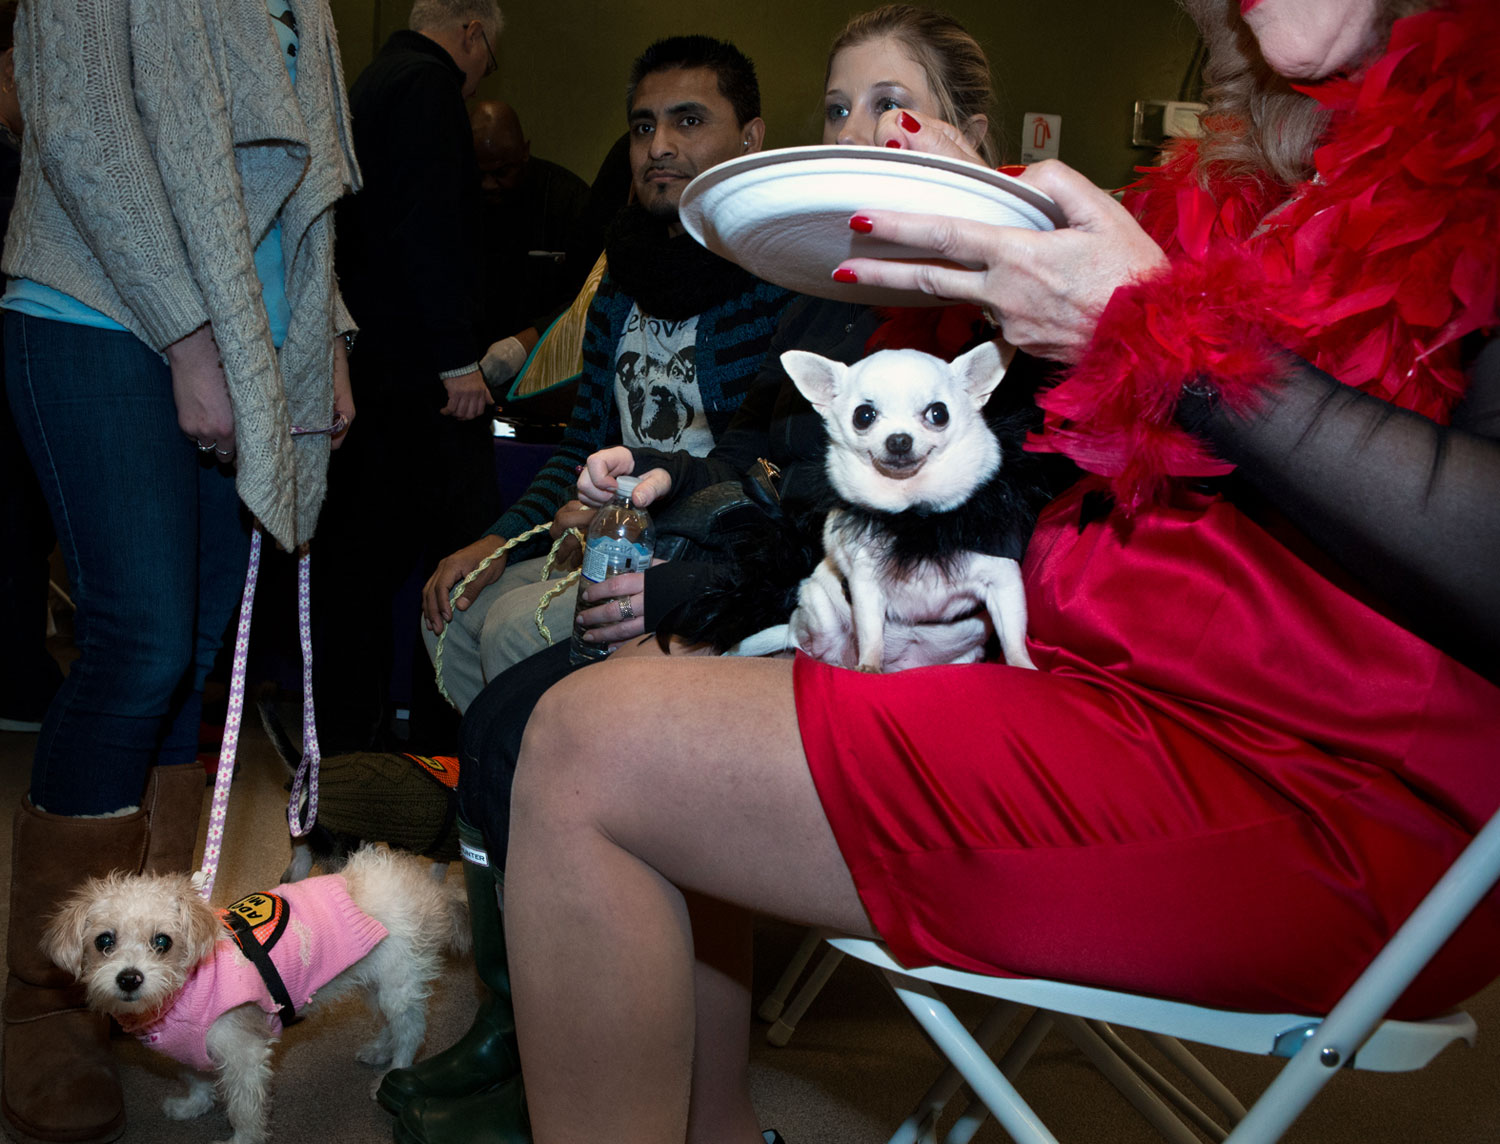 Aspen, a Chihuahua, companion to Terry St. Anglo, at the Couture Paws For a Cause Brunch, a benefit hosted by Celebrity Catwalk.